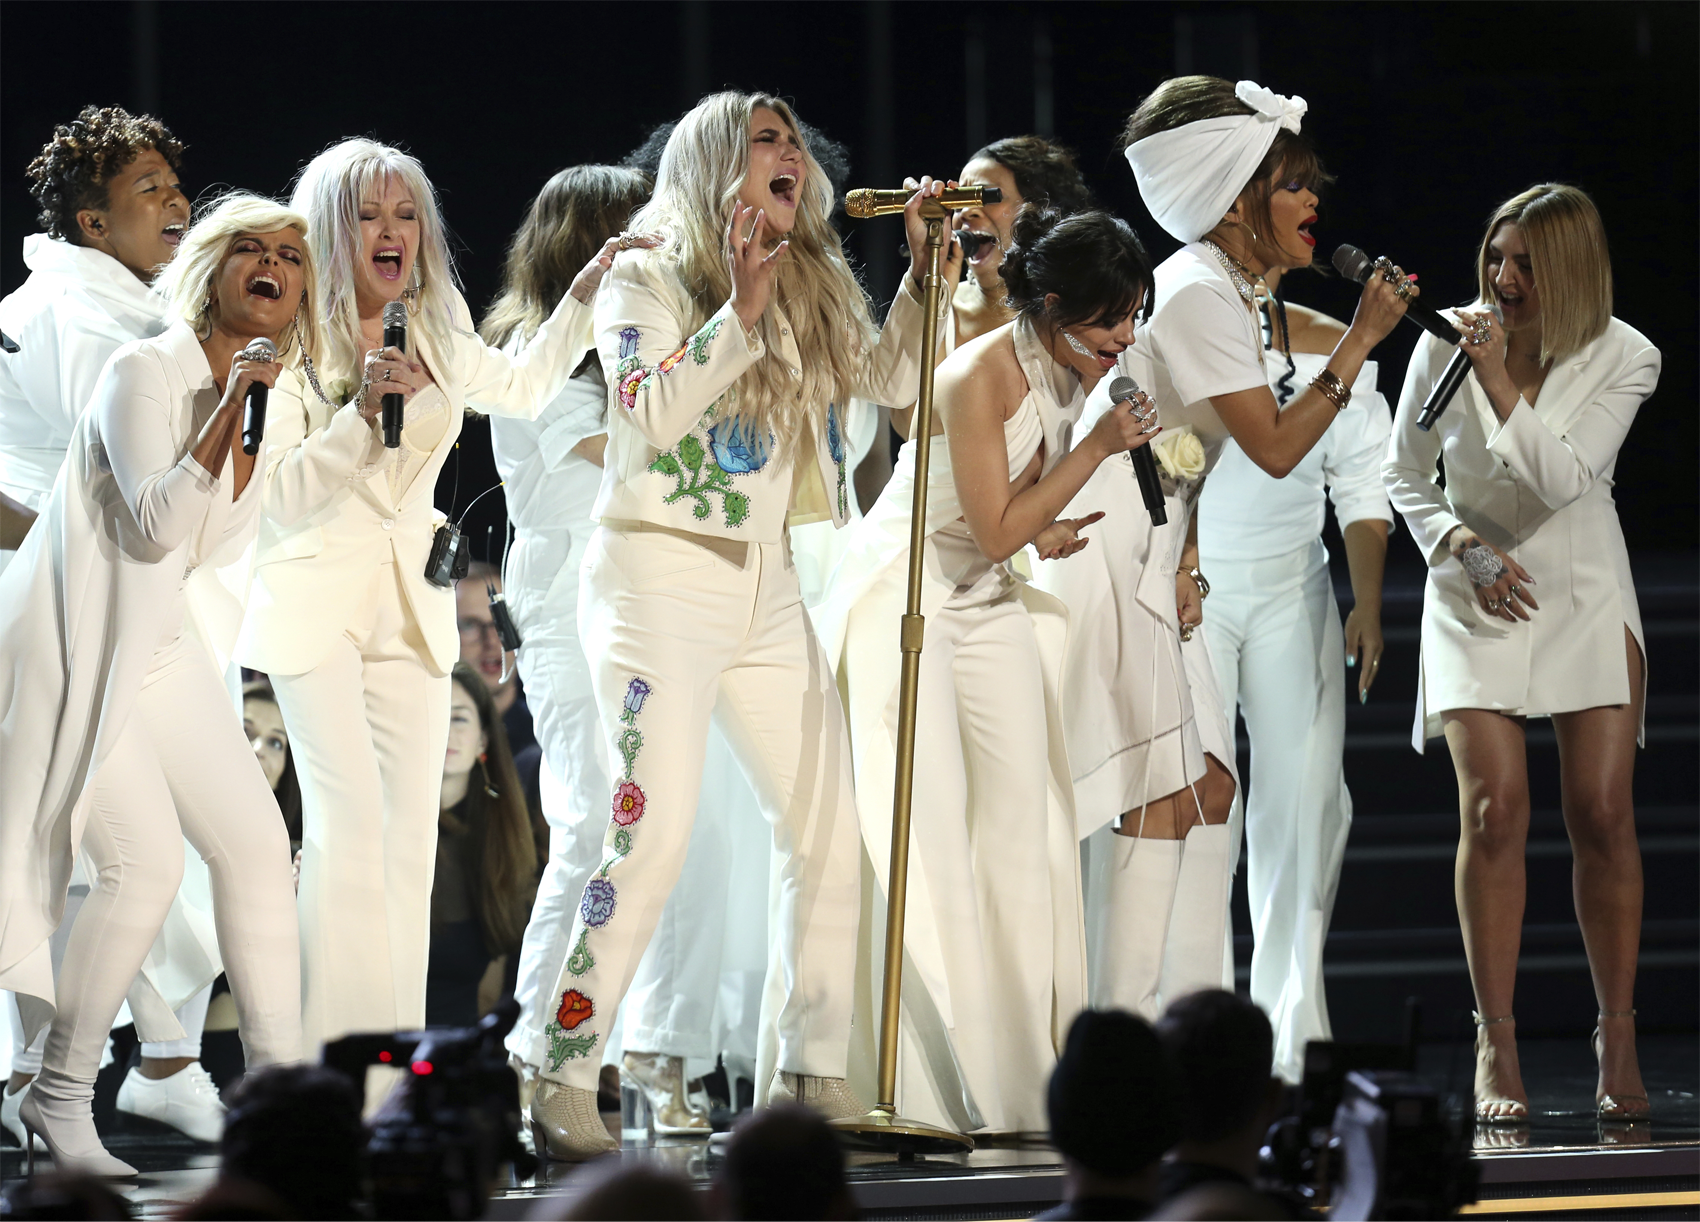 """Kesha, center, performs """"Praying"""" as, from left, Bebe Rexha, Cyndi Lauper, Camila Cabello, Andra Day and Julia Michaels provide back up vocals at the 60th annual Grammy Awards. (Matt Sayles/AP)"""